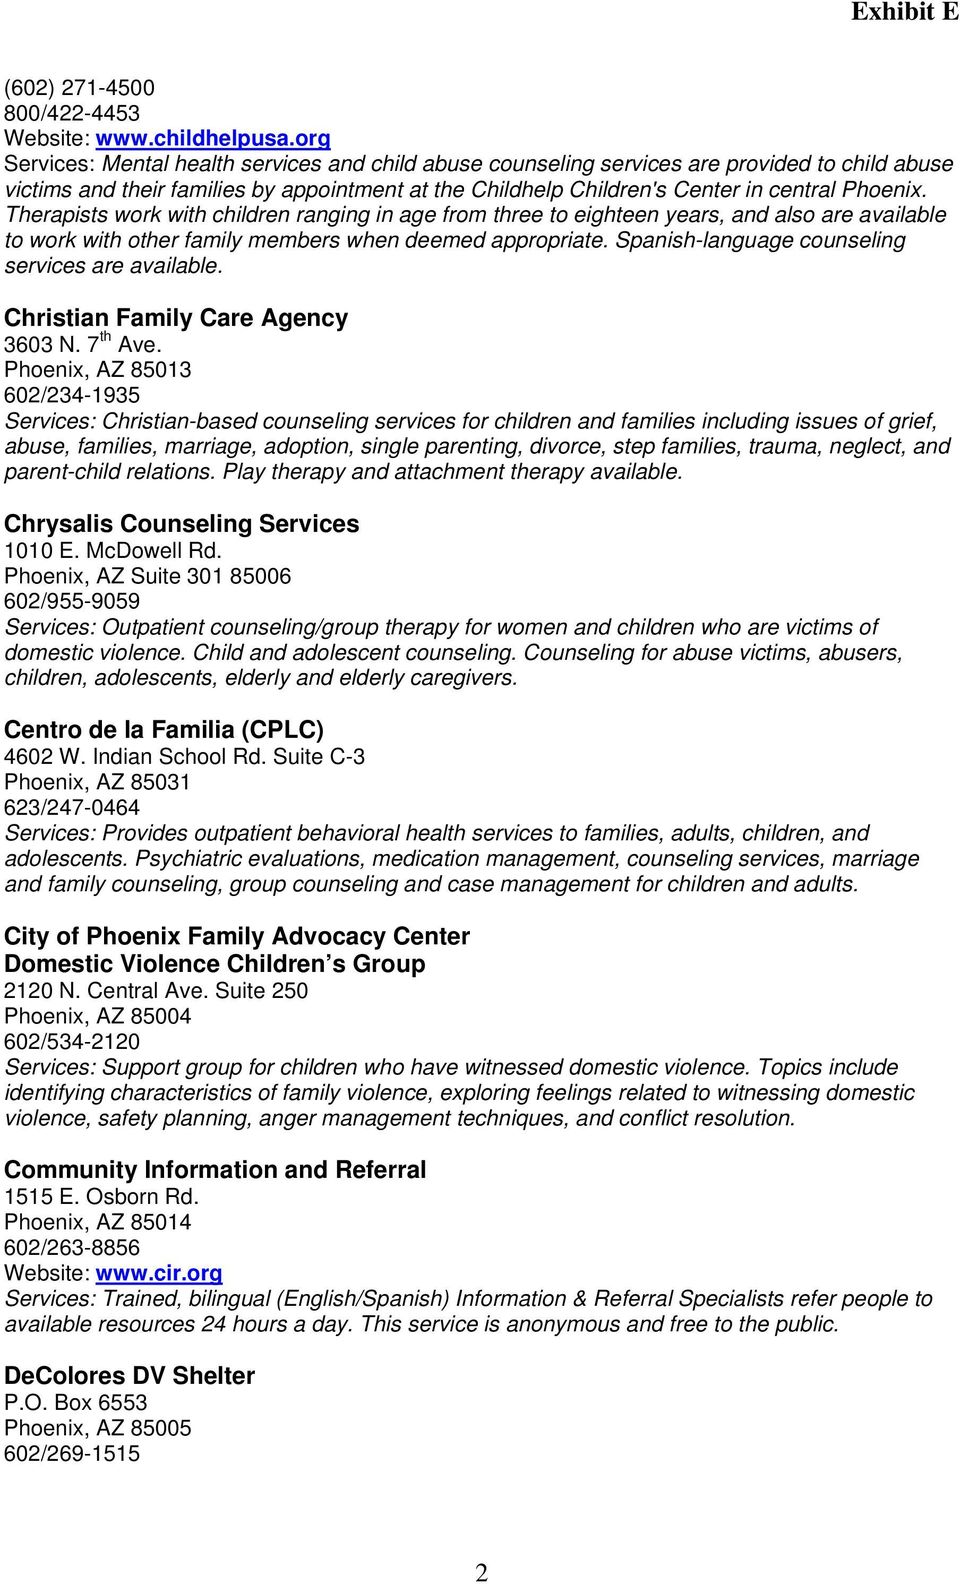 West Valley Children and Domestic Violence Resource List - PDF